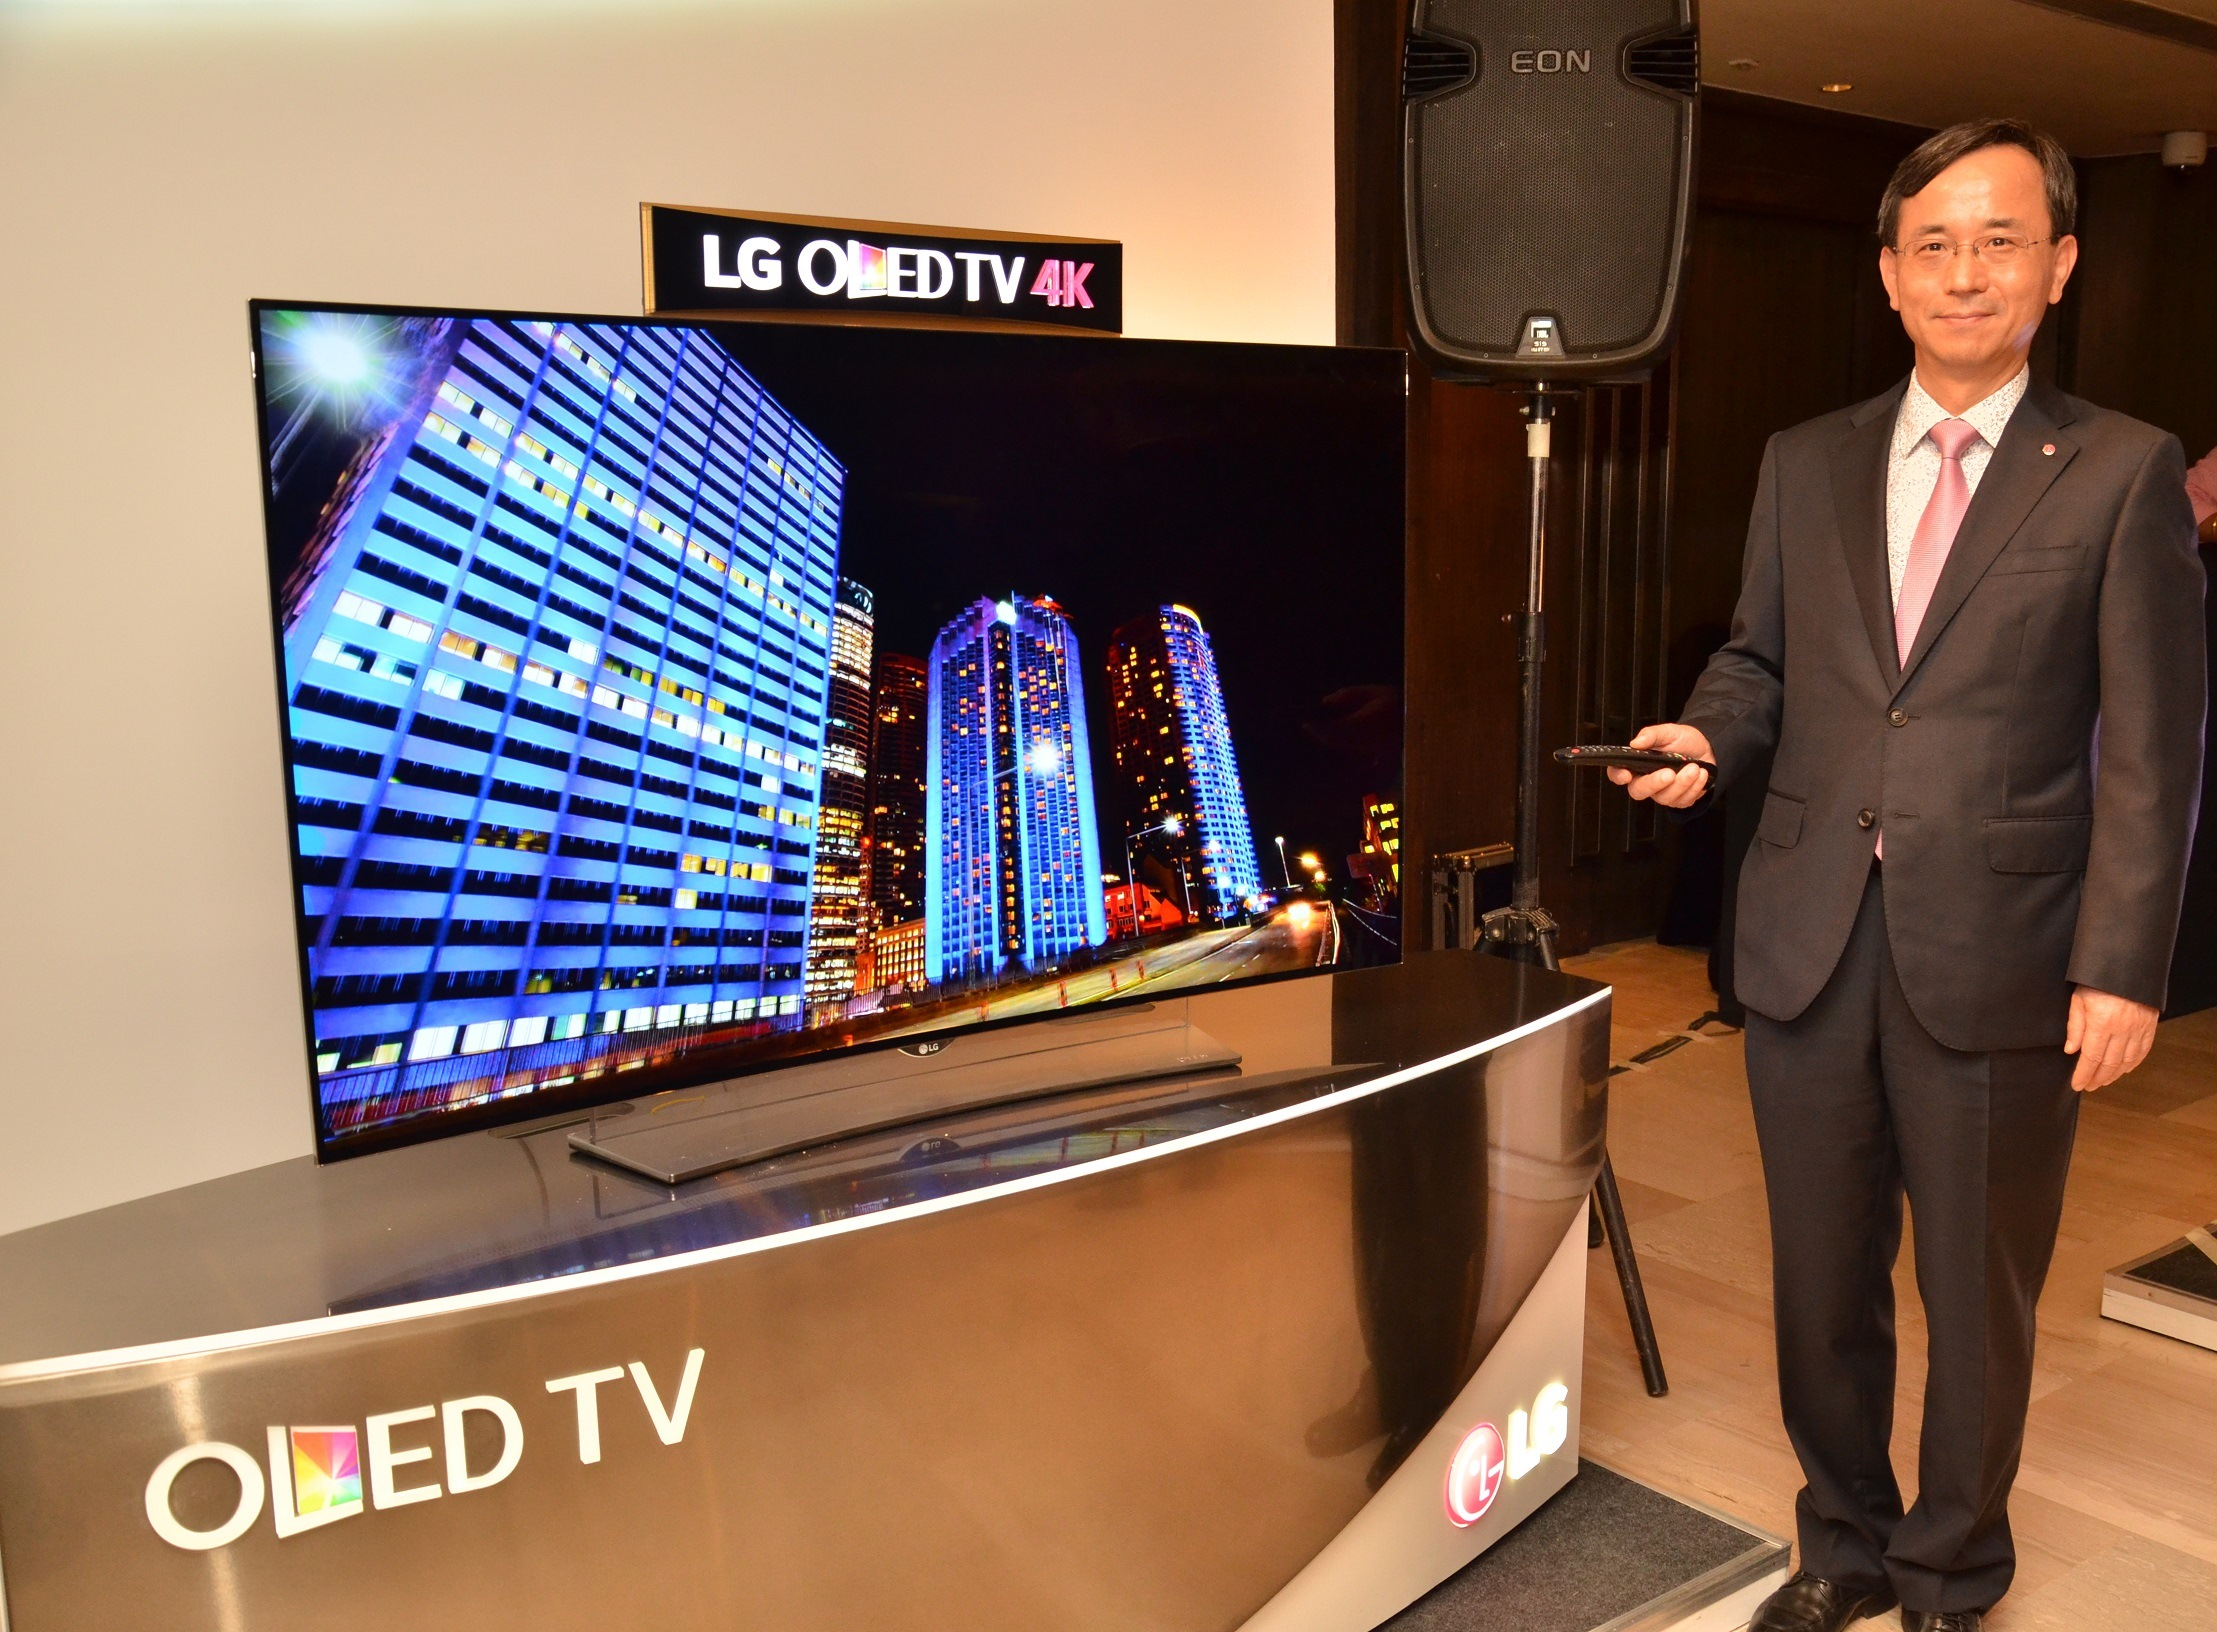 Mr Howard Lee, Director-Home Entertainment, LG India at the 4K OLED Launch